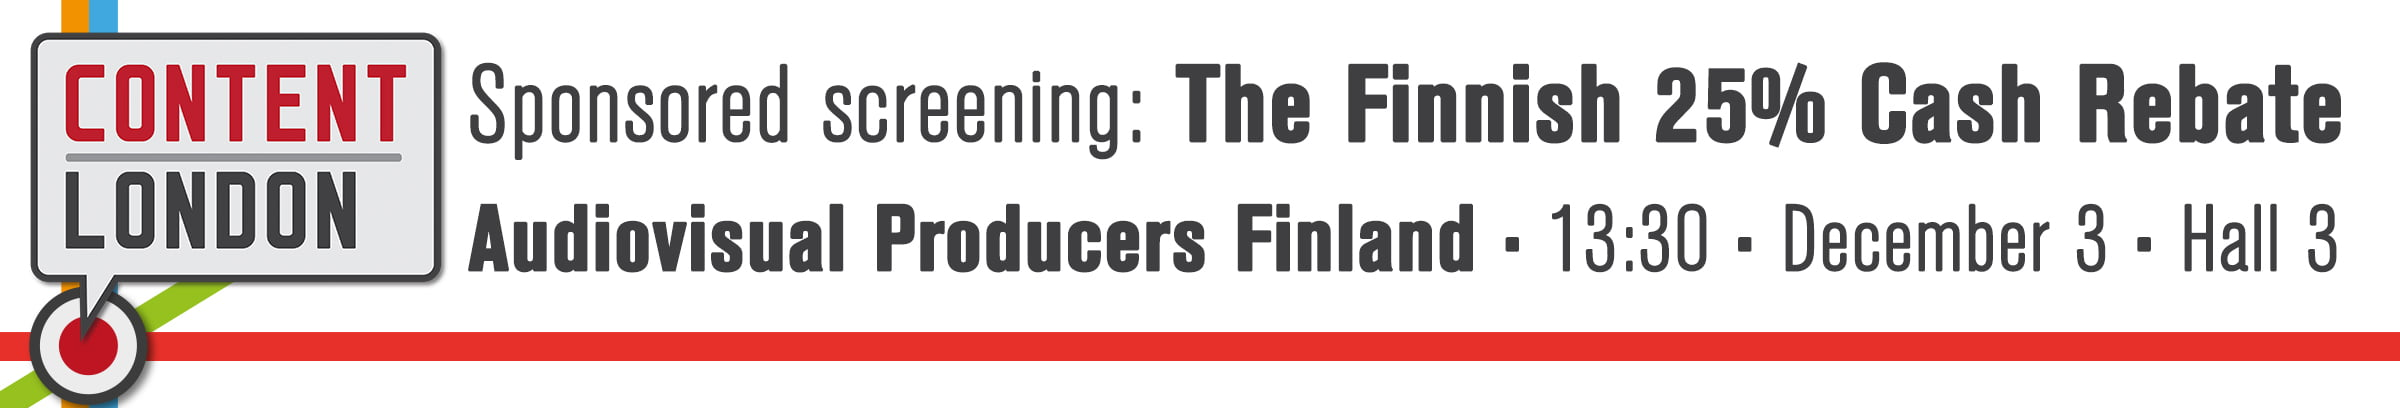 Audiovisual Producers Finland